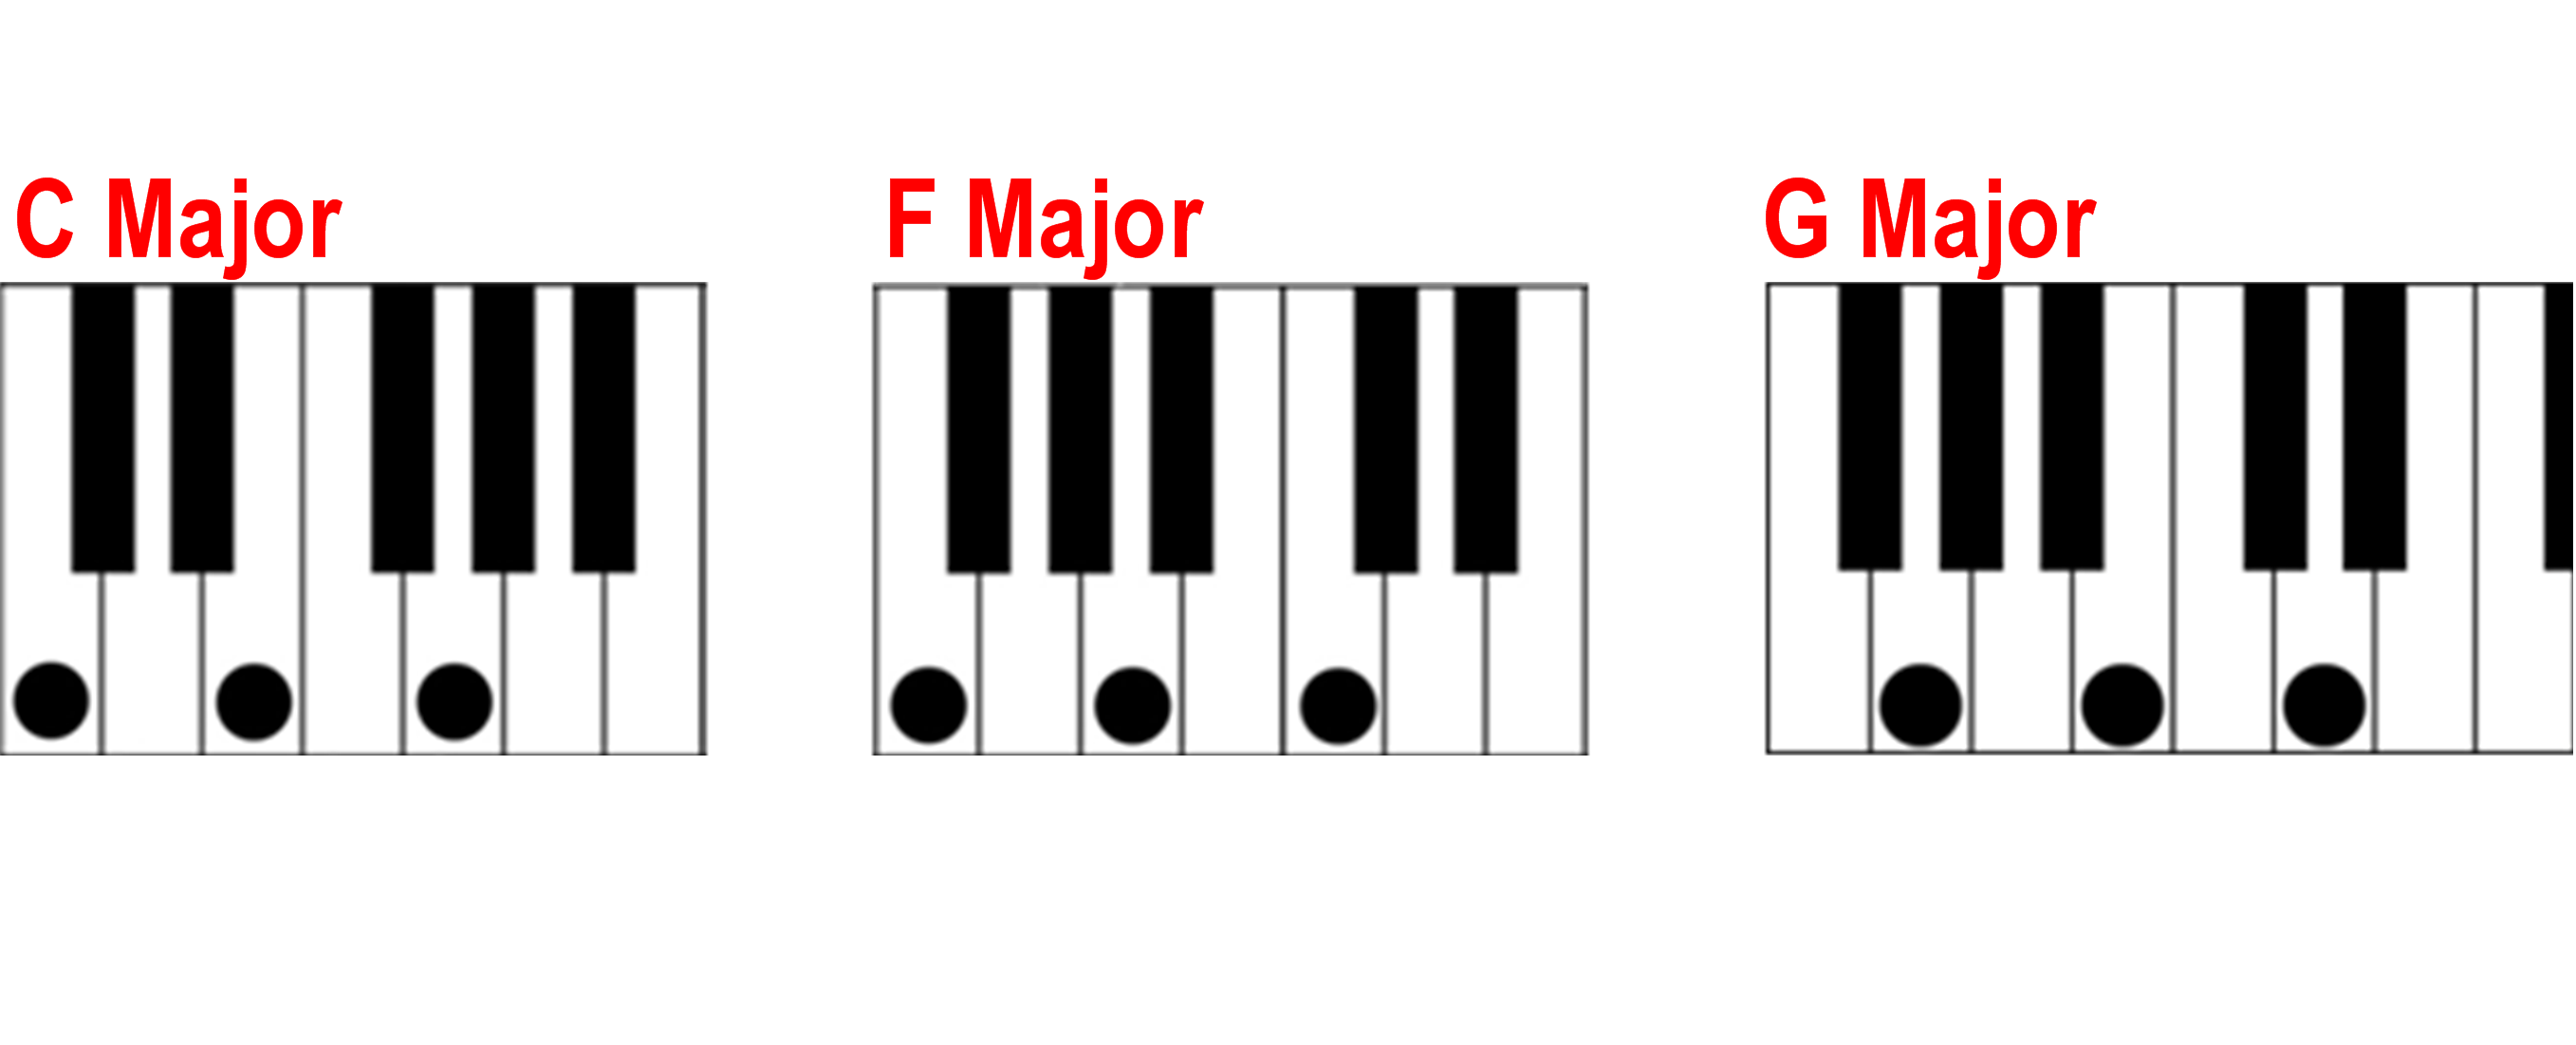 Piano clipart chord. Finding a major on